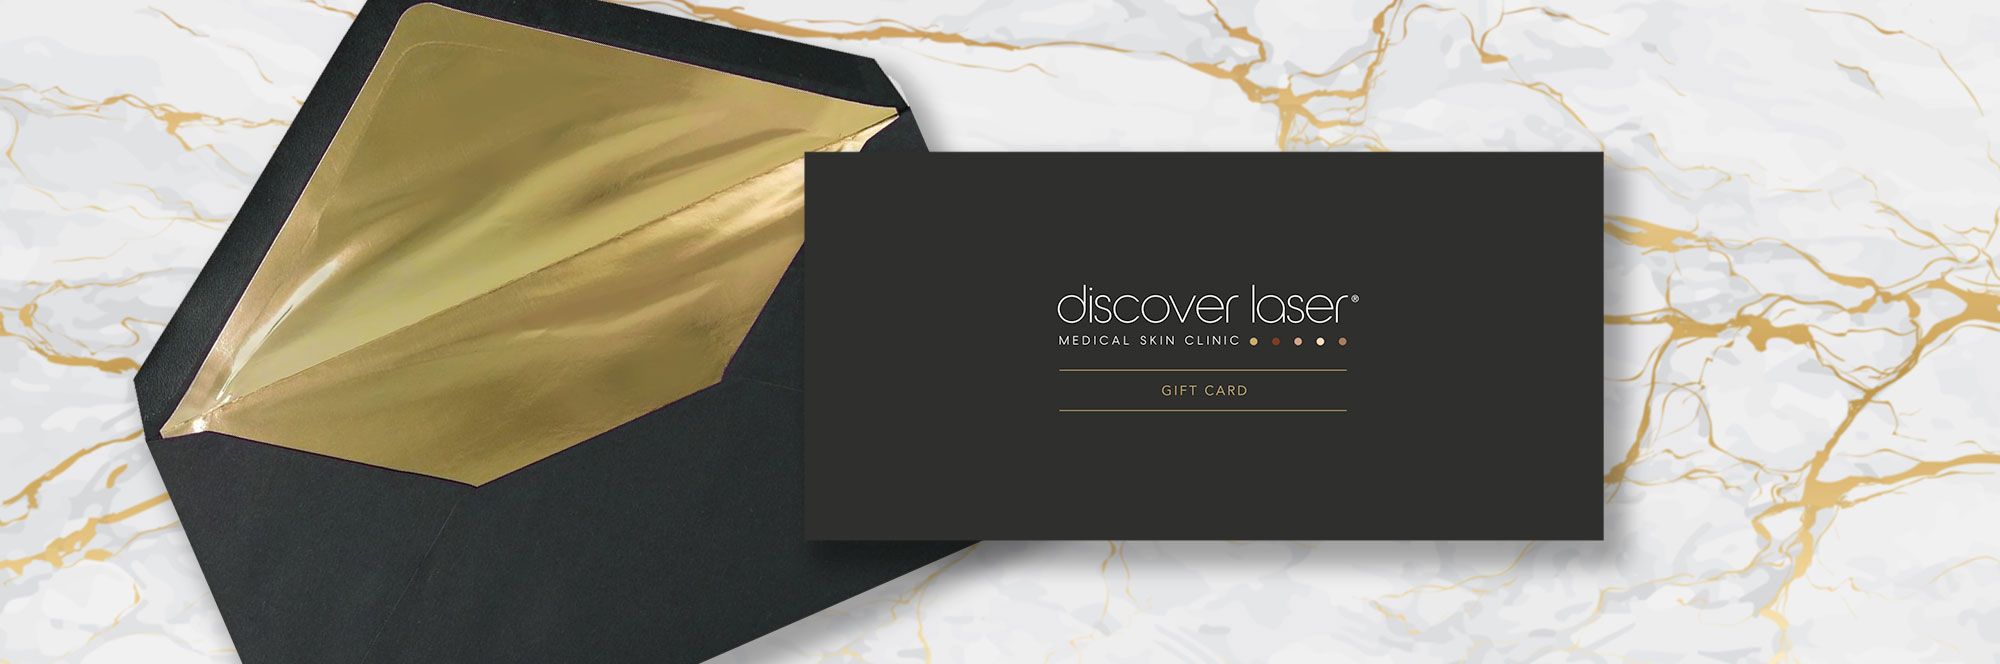 Discover Laser Gift Card and Envelope